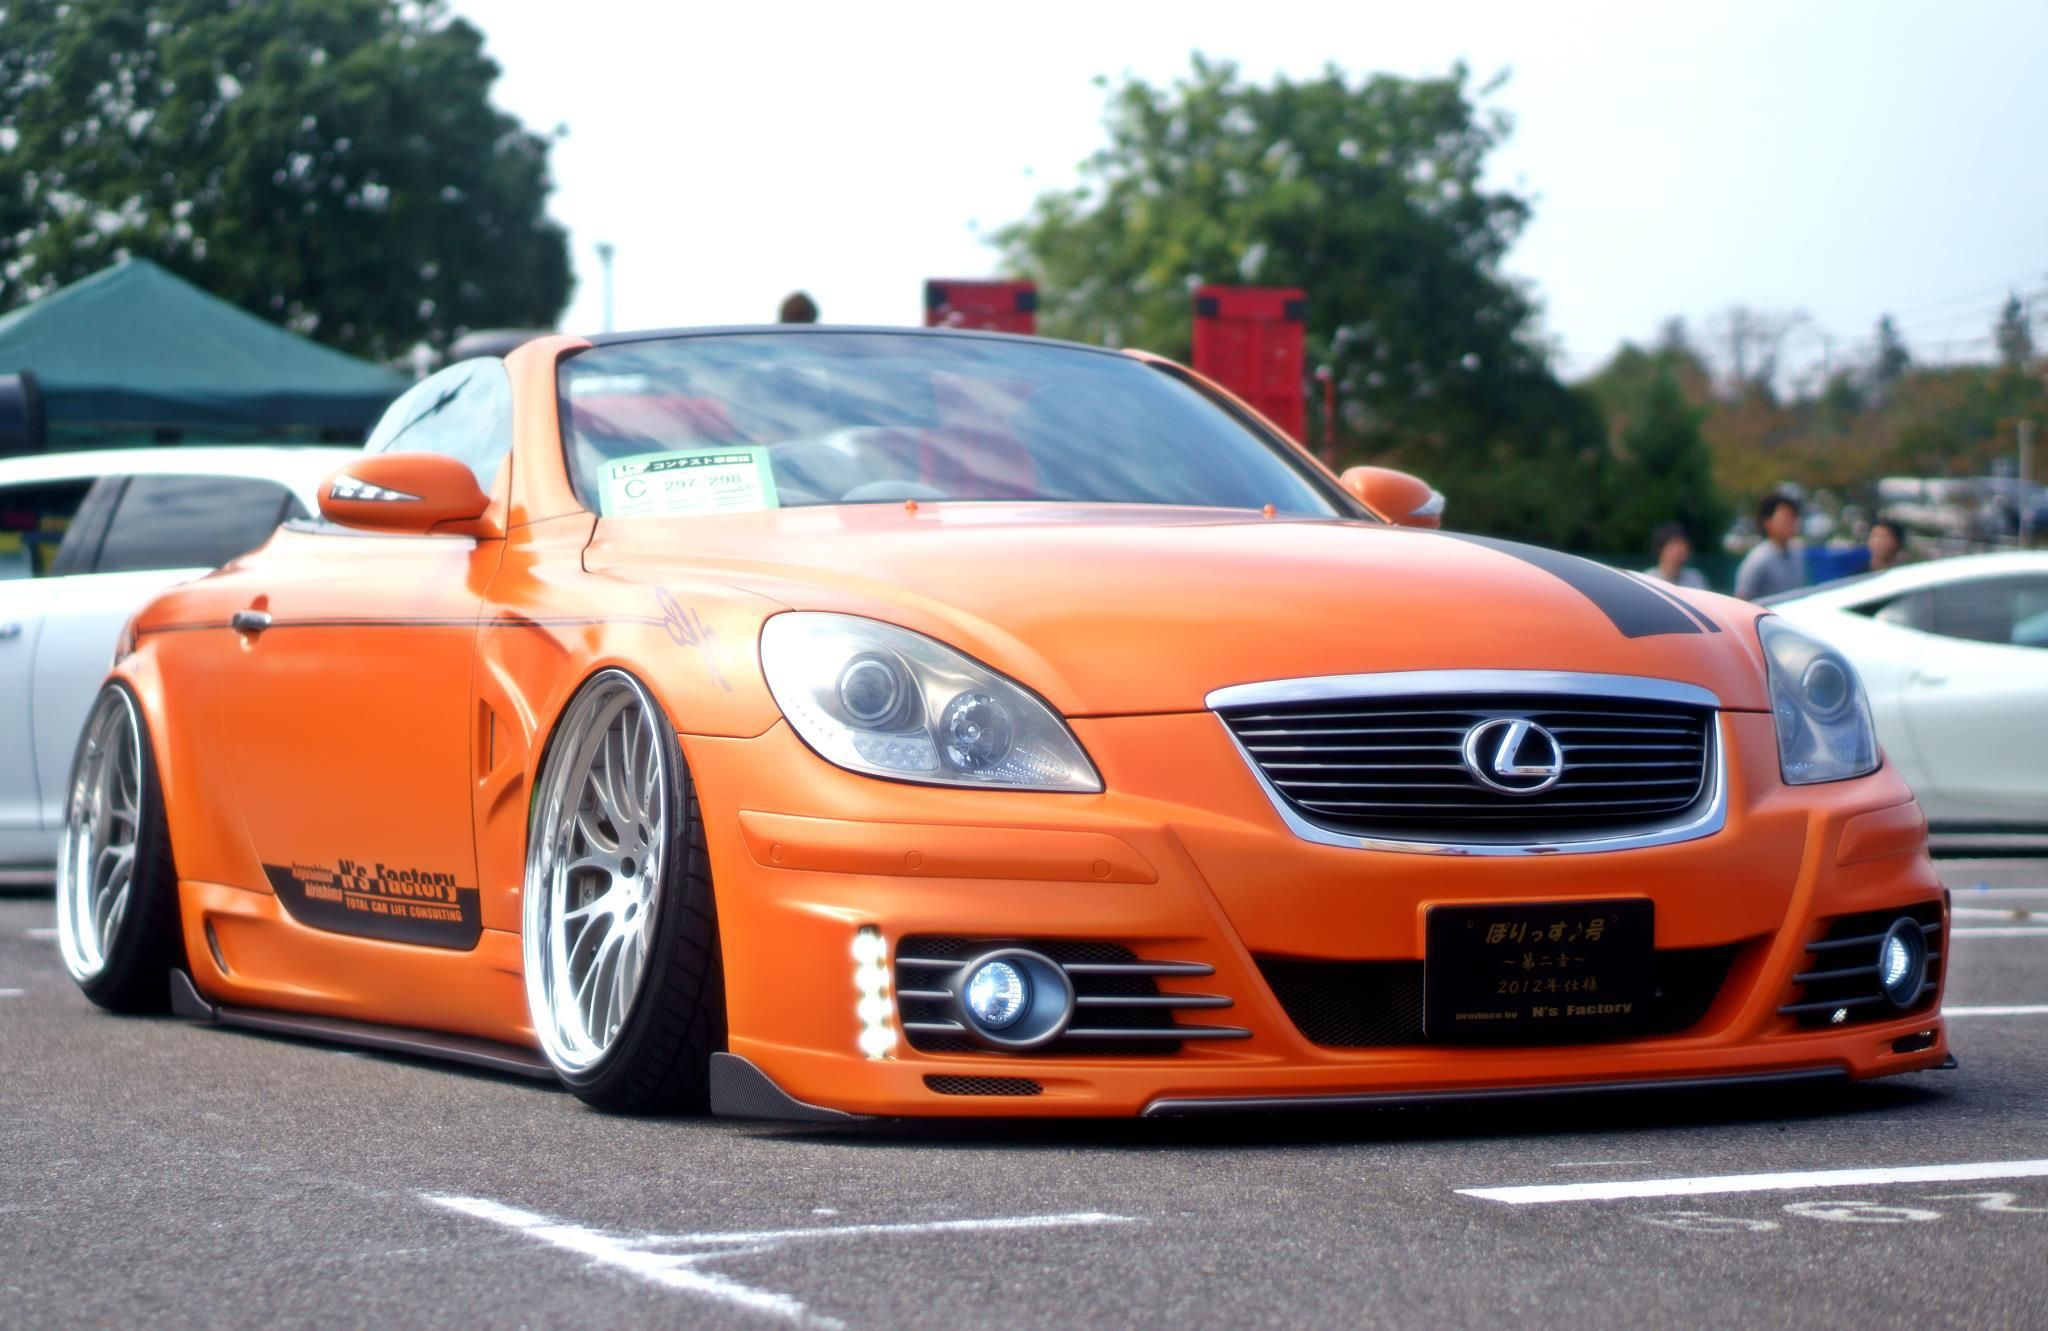 Lexus sc430 uzz40 lexus pinterest lexus sc430 toyota and cars